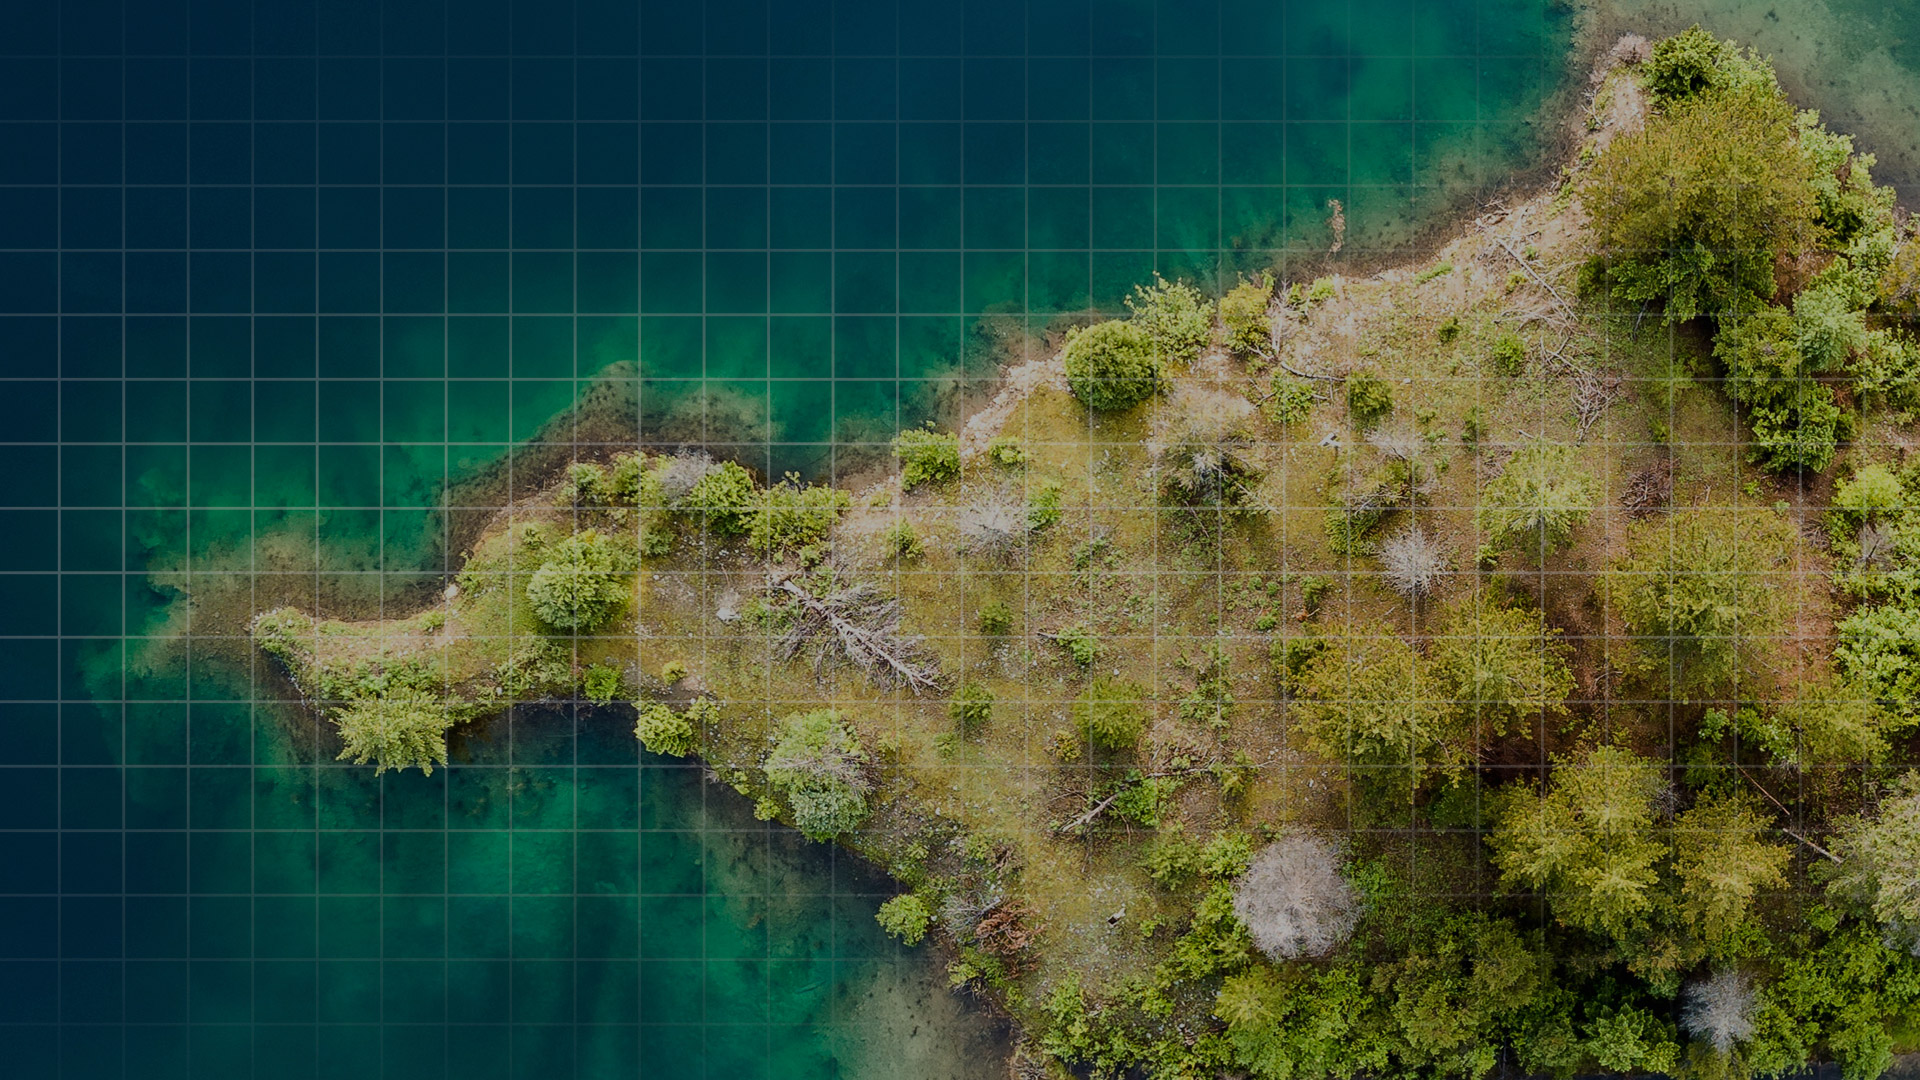 birds eye view of tree covered island with surrounding sea